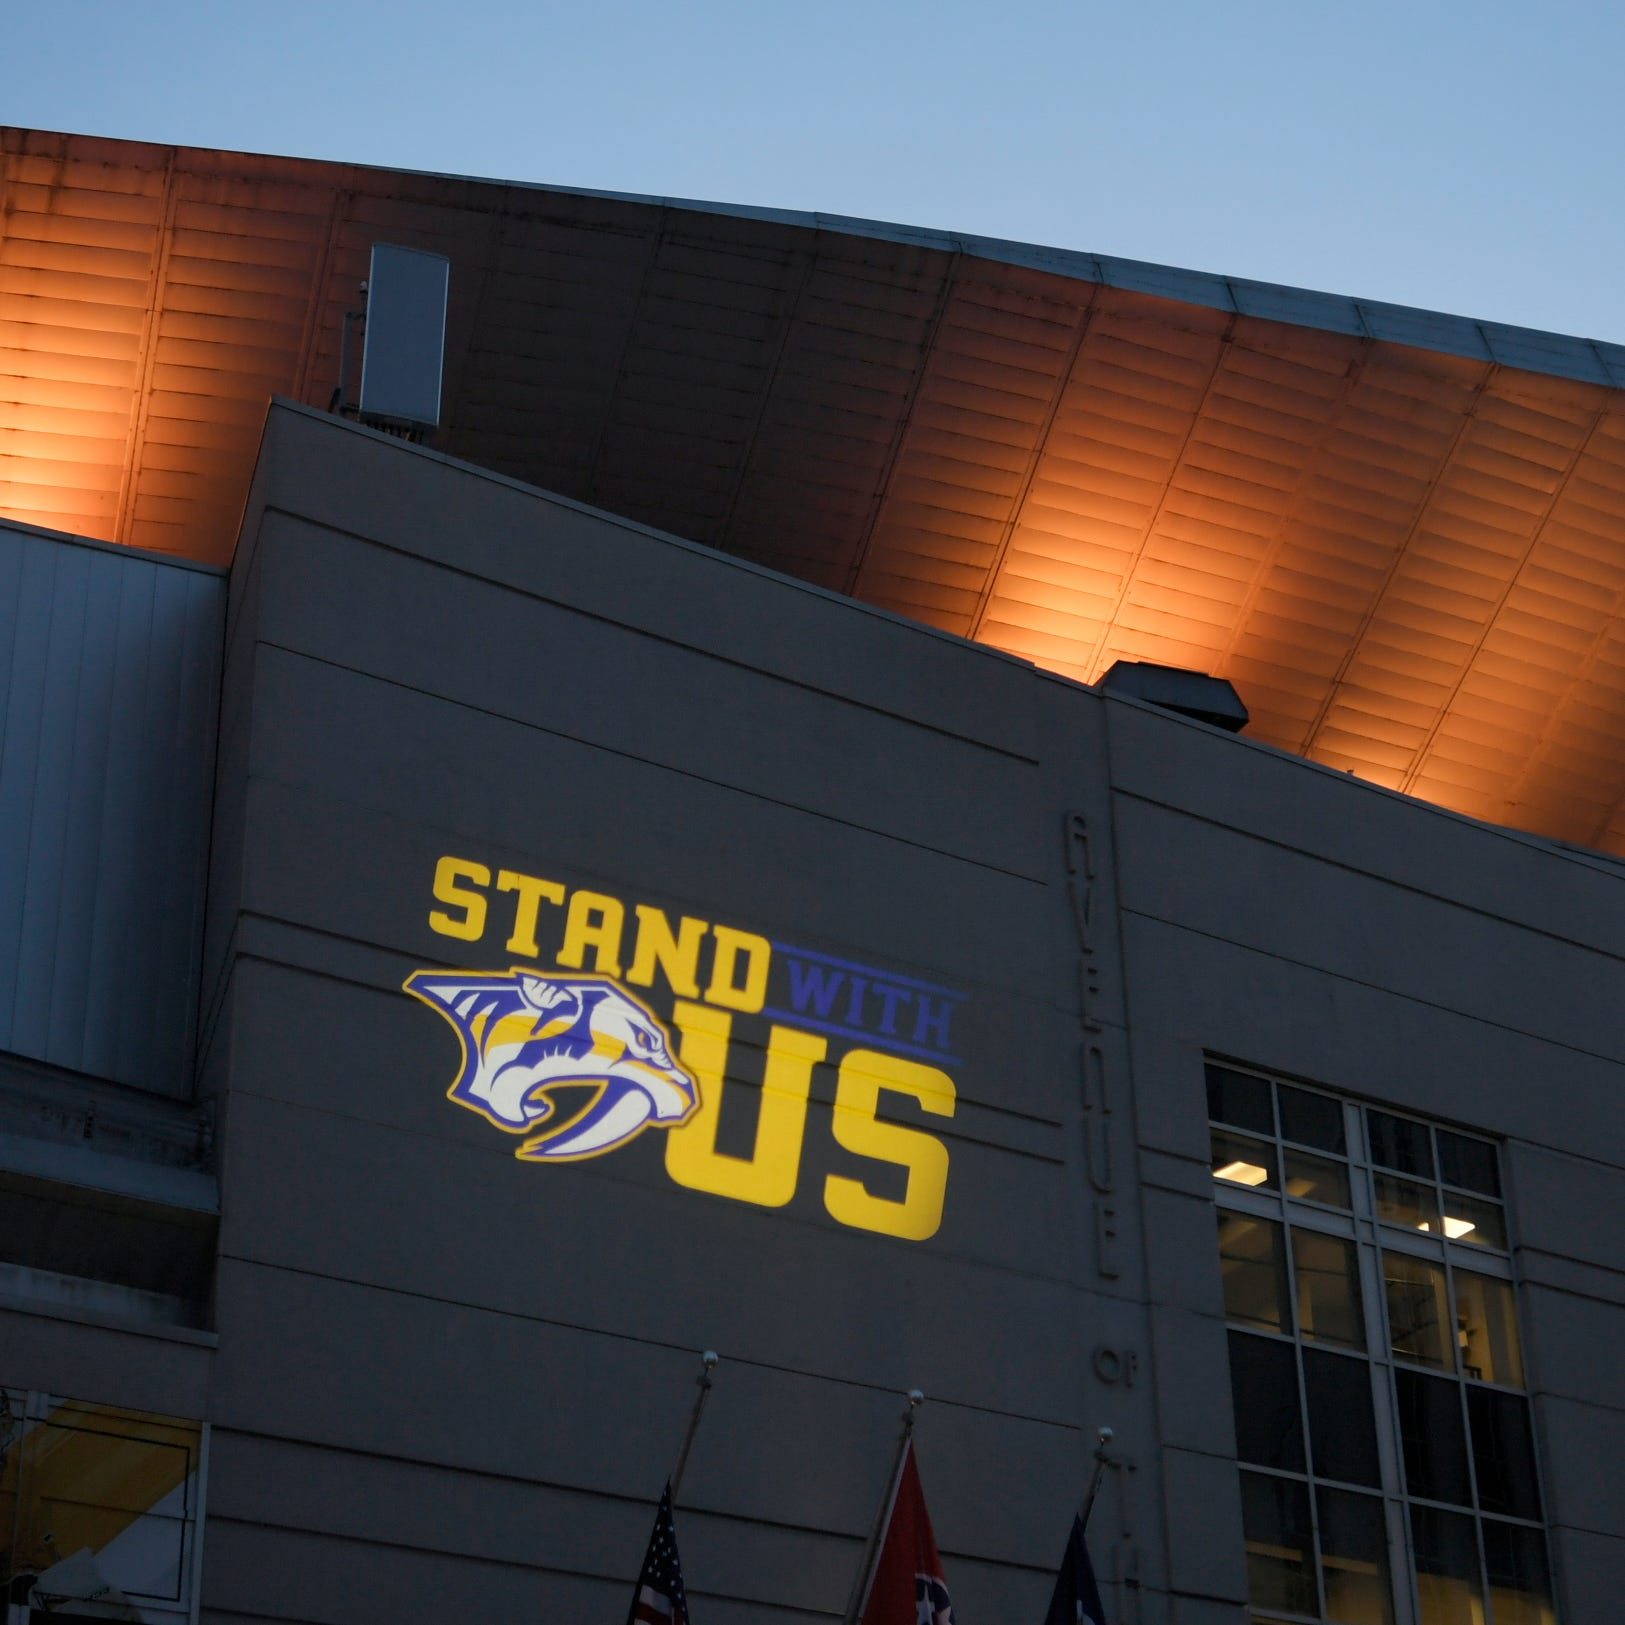 Nashville Predators and Mayor David Briley reach decades-long Bridgestone Arena deal